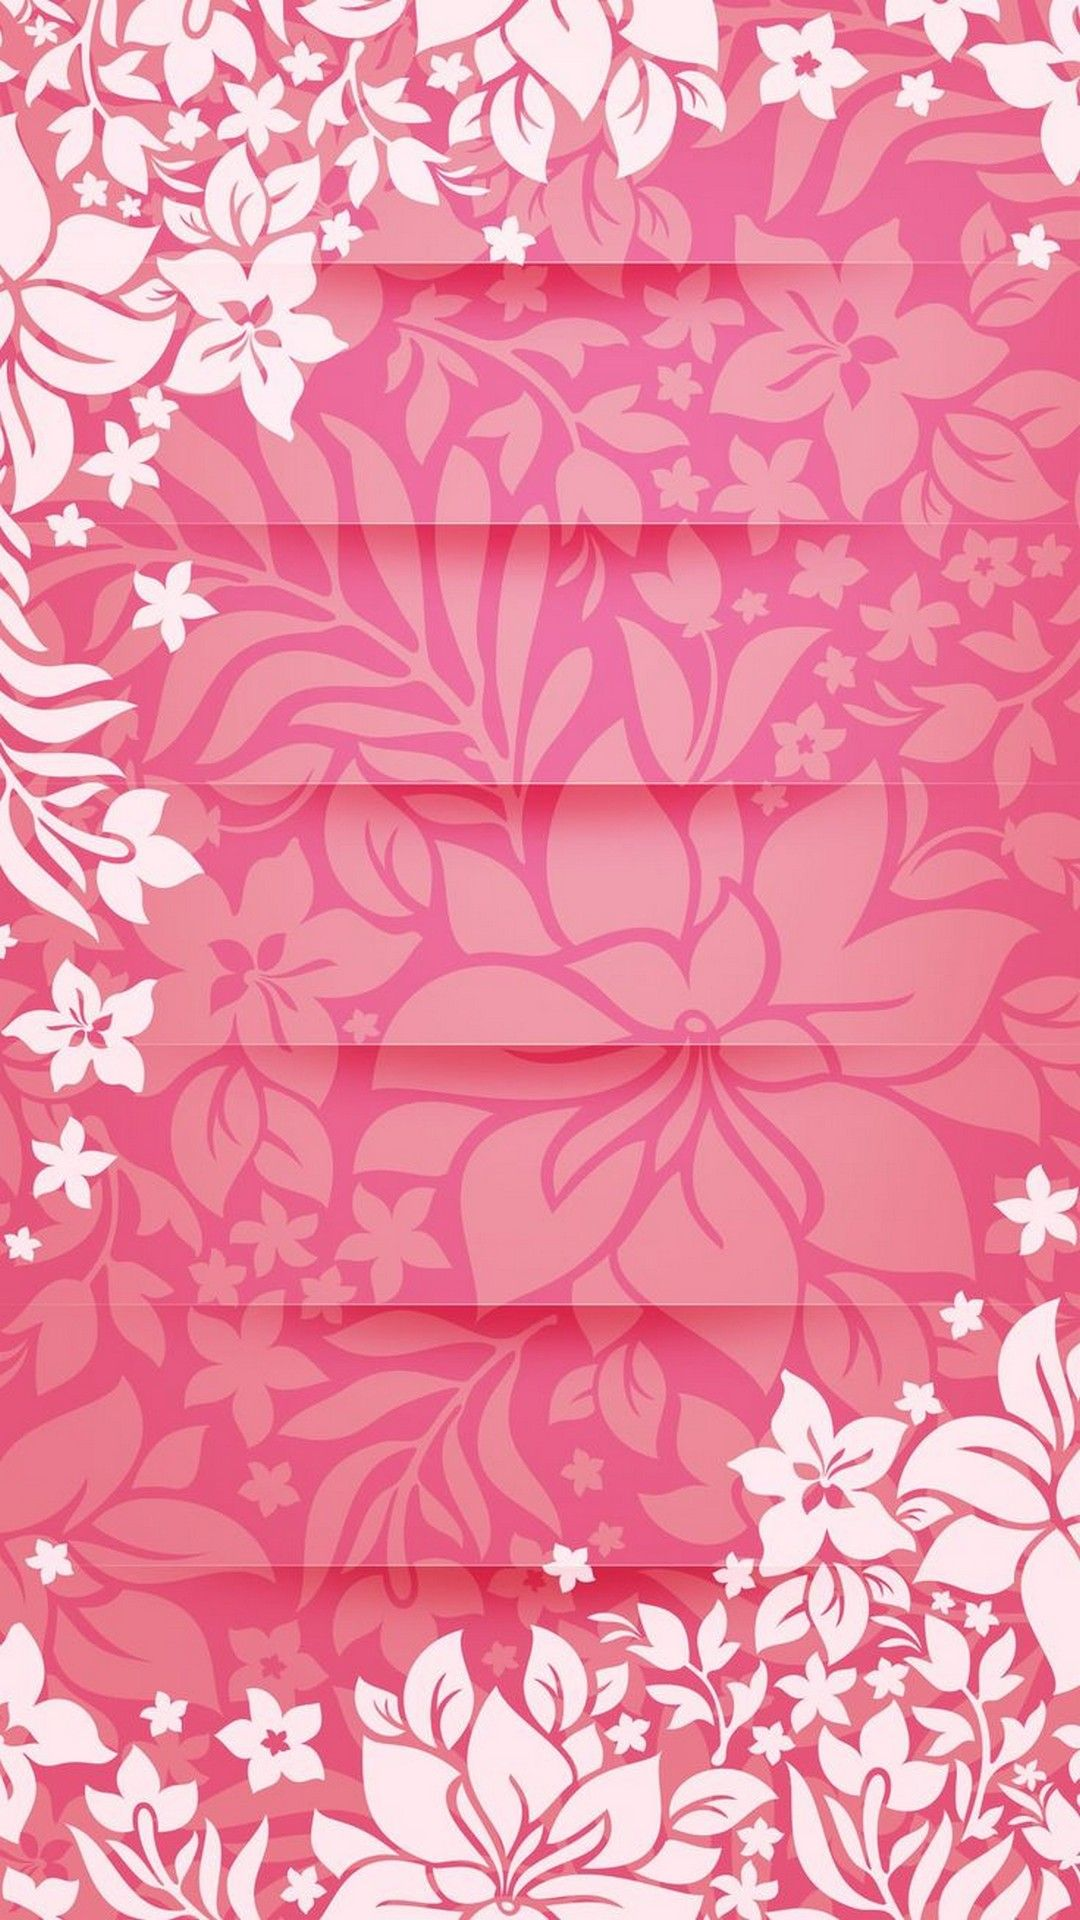 Cute Girly Hd Girly Wallpapers For Android Mobile Full Screen